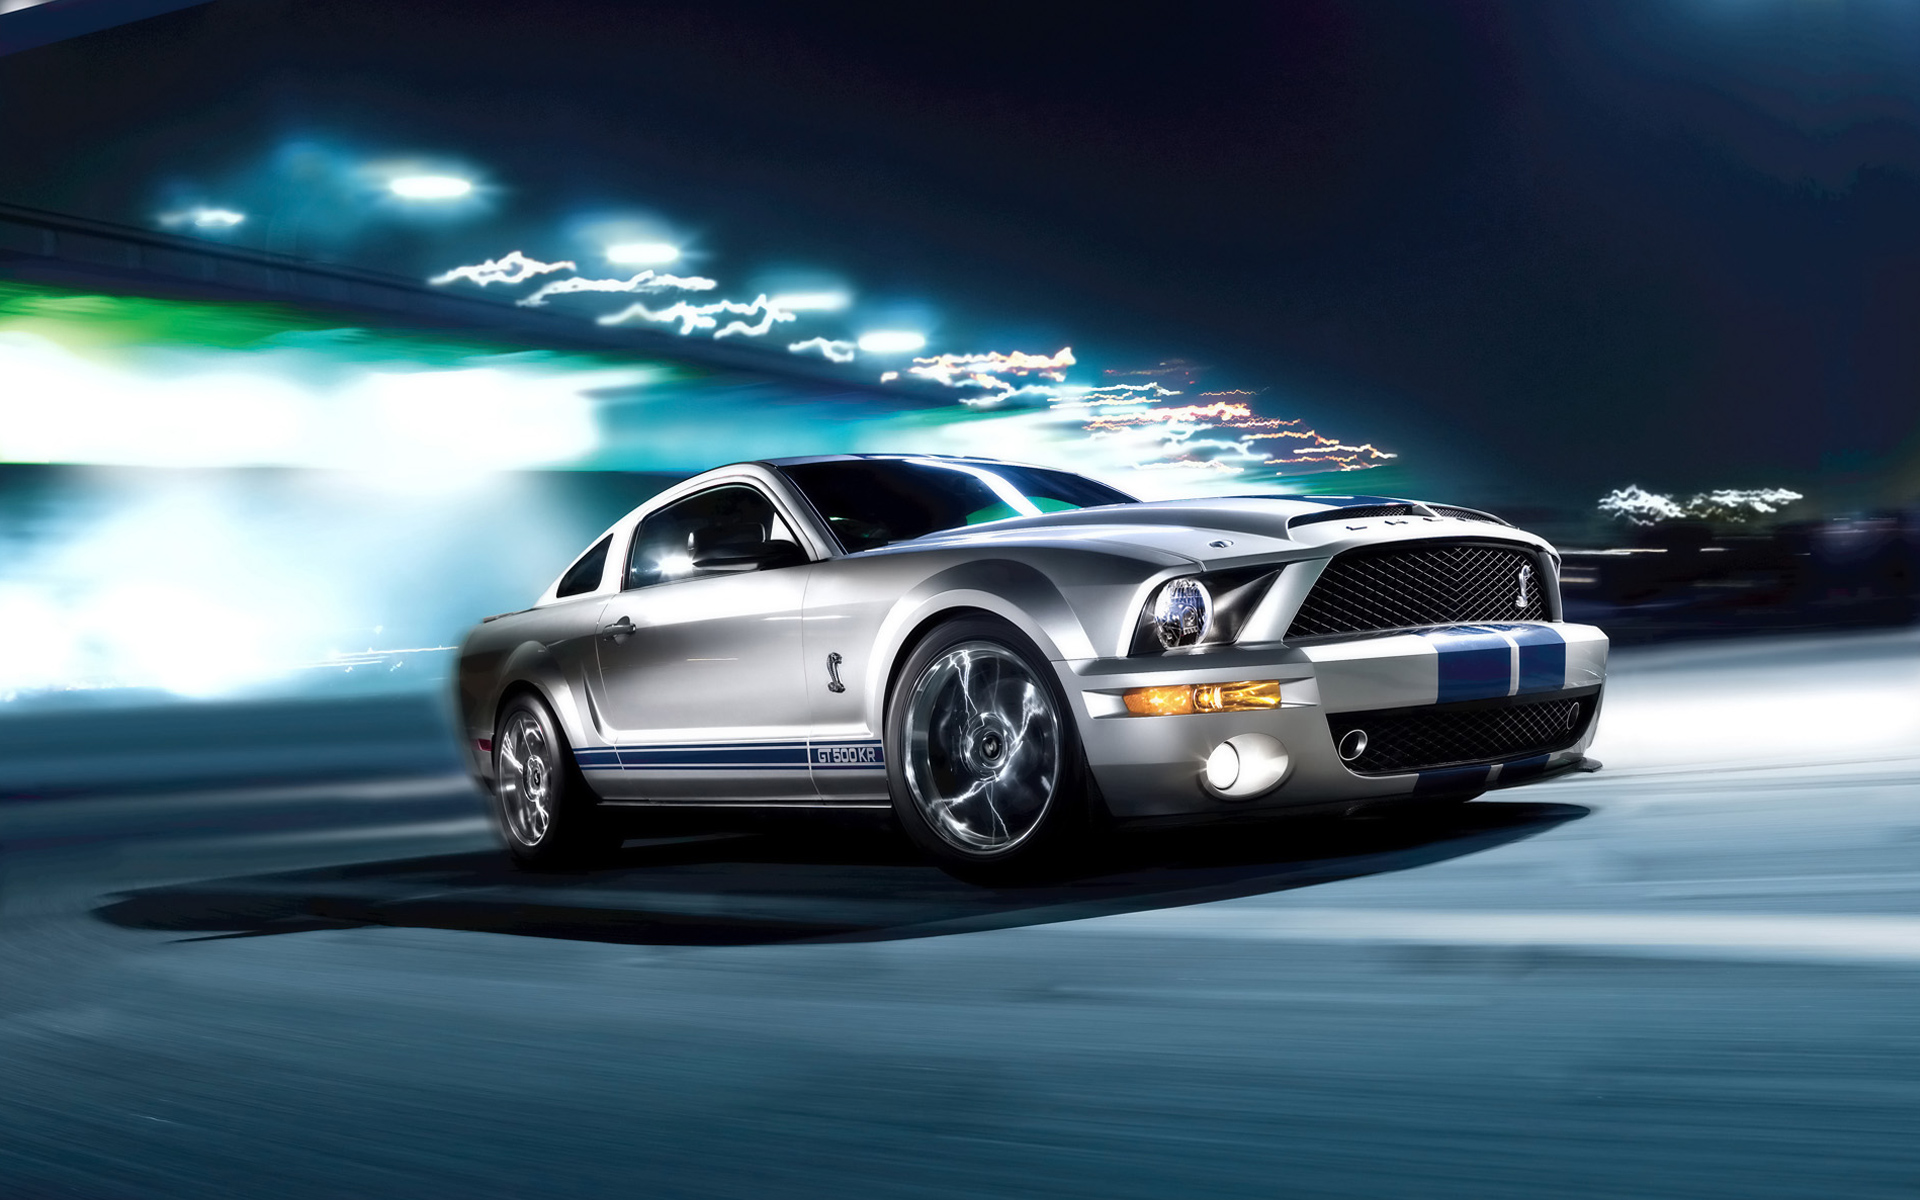 Ford Mustang Shelby 408.17 Kb